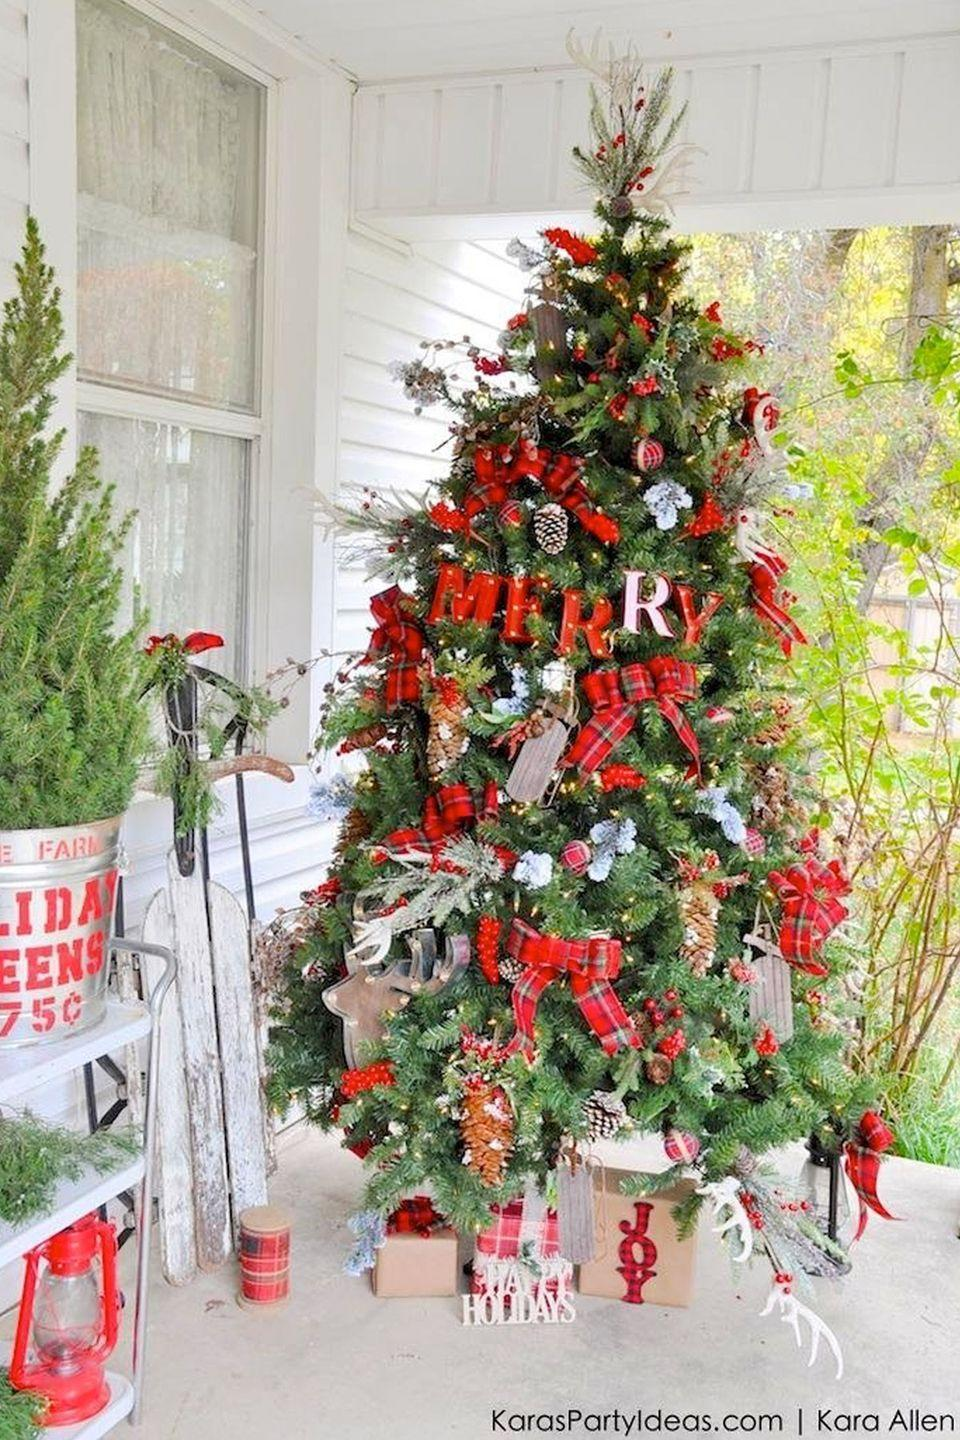 """<p>Plaid ribbon bows add playful pops color to this vibrant tree. </p><p><em><strong>G</strong><strong>et the tutorial at <a href=""""http://karaspartyideas.com/2015/10/rustic-farm-house-cabin-christmas-tree-michaels-dream-tree-challenge-2015.html"""" rel=""""nofollow noopener"""" target=""""_blank"""" data-ylk=""""slk:Kara's Party Ideas"""" class=""""link rapid-noclick-resp"""">Kara's Party Ideas</a>. </strong></em></p><p><a class=""""link rapid-noclick-resp"""" href=""""https://www.amazon.com/Natural-Decorative-Winter-Holiday-Filler/dp/B075Q98P4D/?tag=syn-yahoo-20&ascsubtag=%5Bartid%7C10070.g.2025%5Bsrc%7Cyahoo-us"""" rel=""""nofollow noopener"""" target=""""_blank"""" data-ylk=""""slk:BUY ARTIFICIAL PINE CONES"""">BUY ARTIFICIAL PINE CONES</a> </p>"""